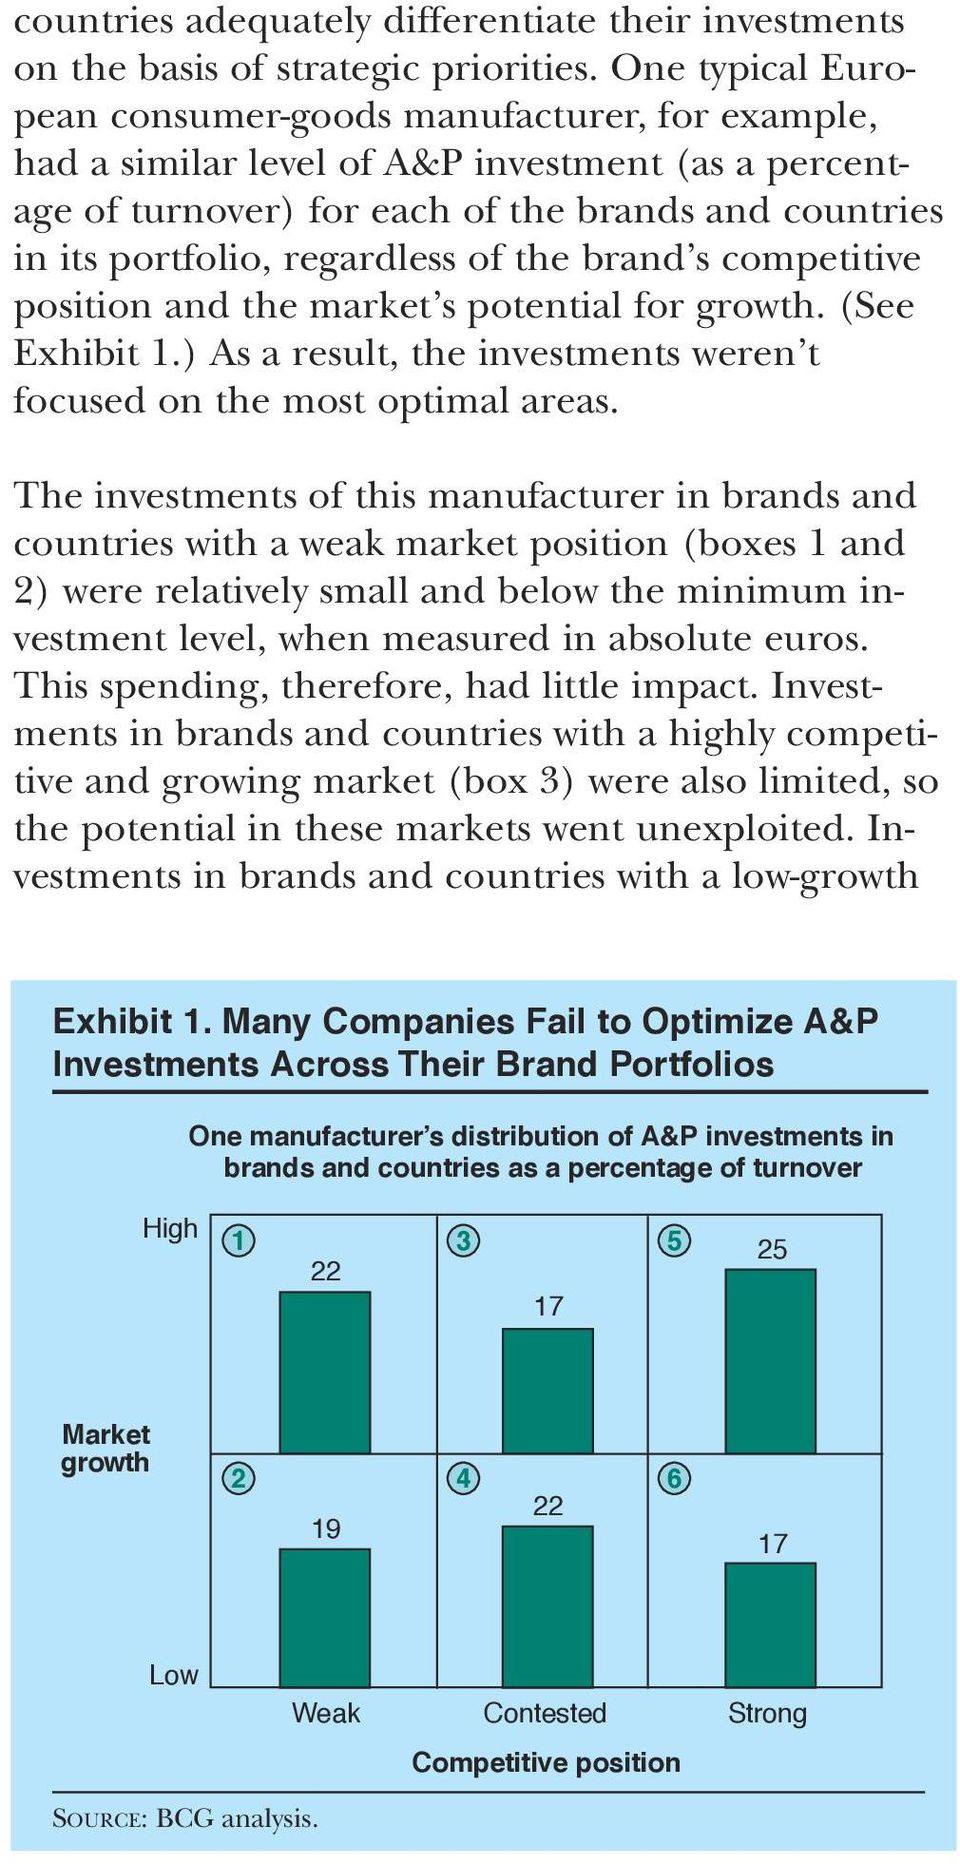 the brand s competitive position and the market s potential for growth. (See Exhibit 1.) As a result, the investments weren t focused on the most optimal areas.